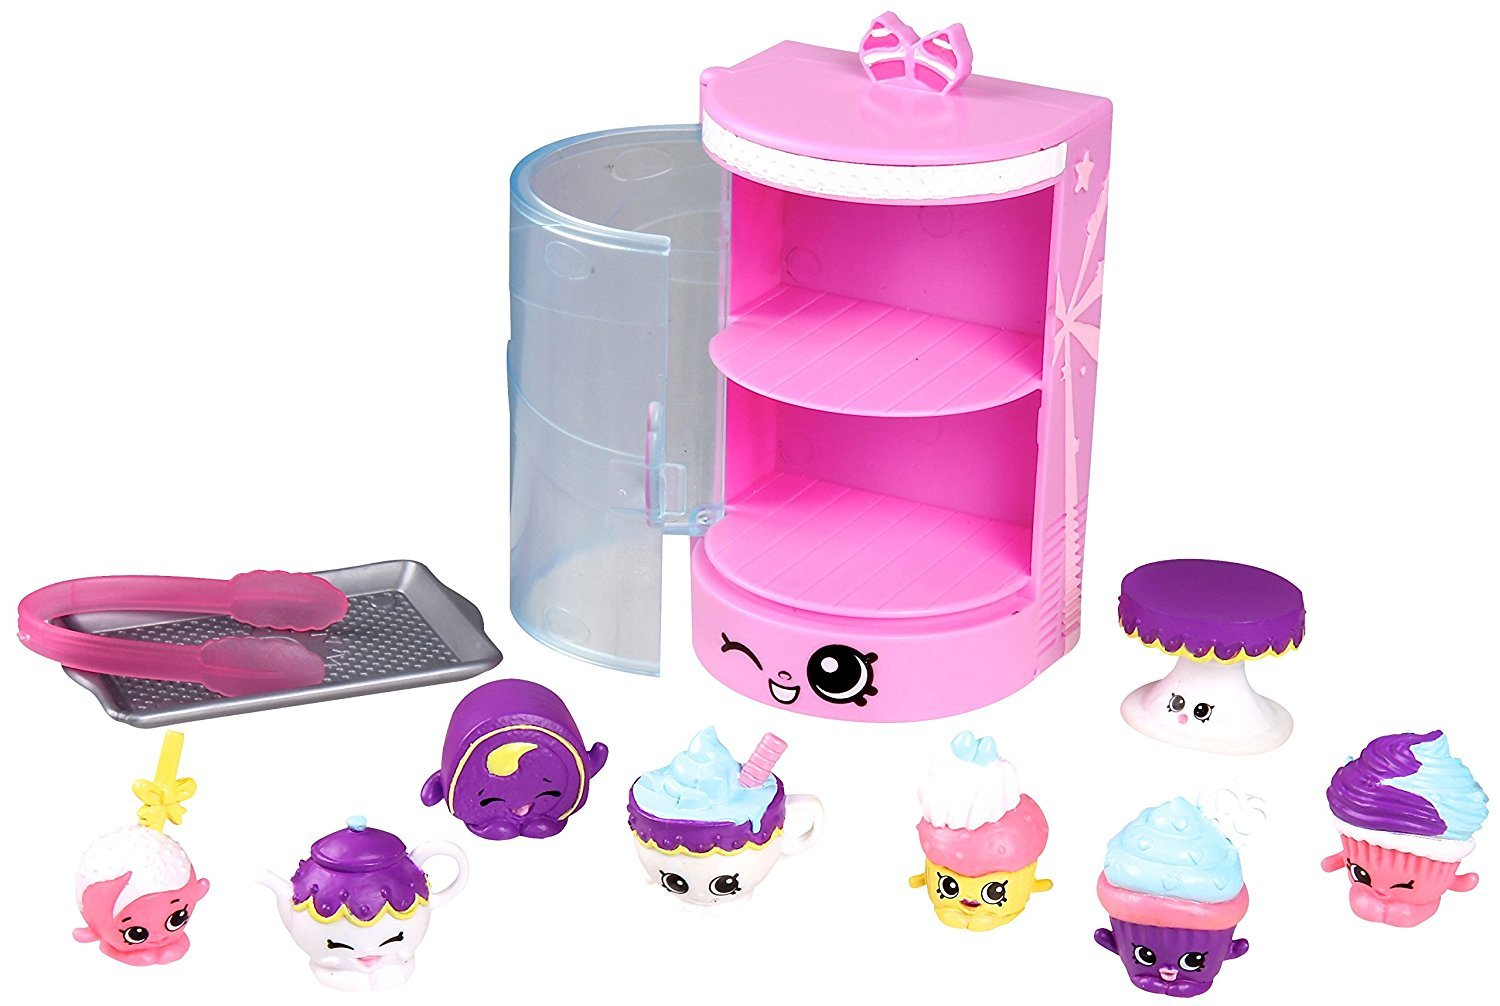 Top 9 Best Shopkins Toys Reviews in 2020 7